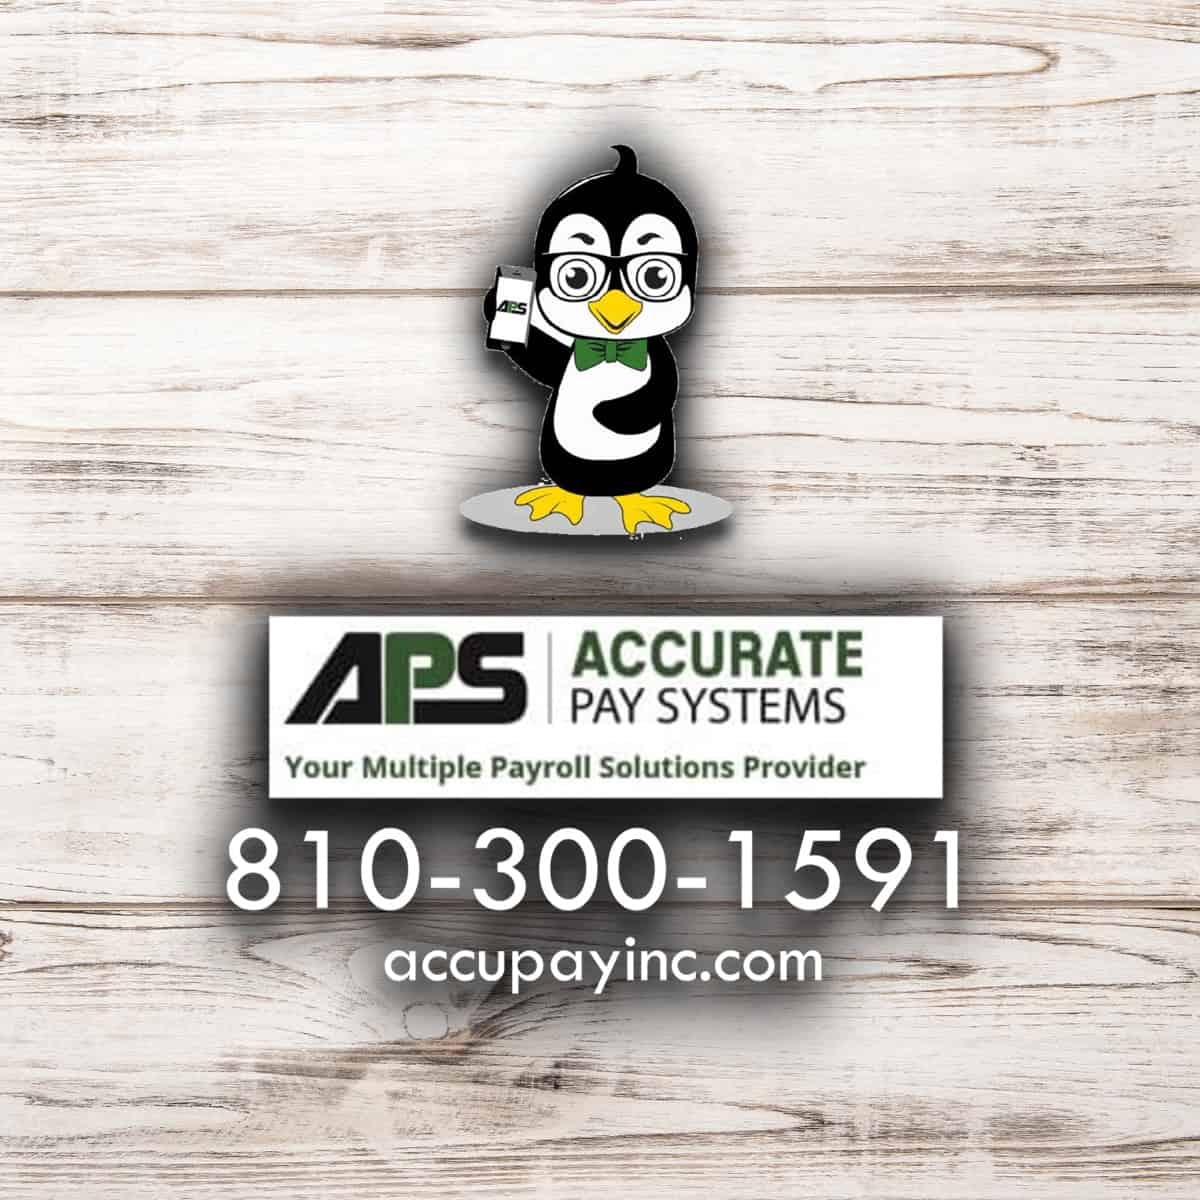 Accurate Pay Systems, Inc.